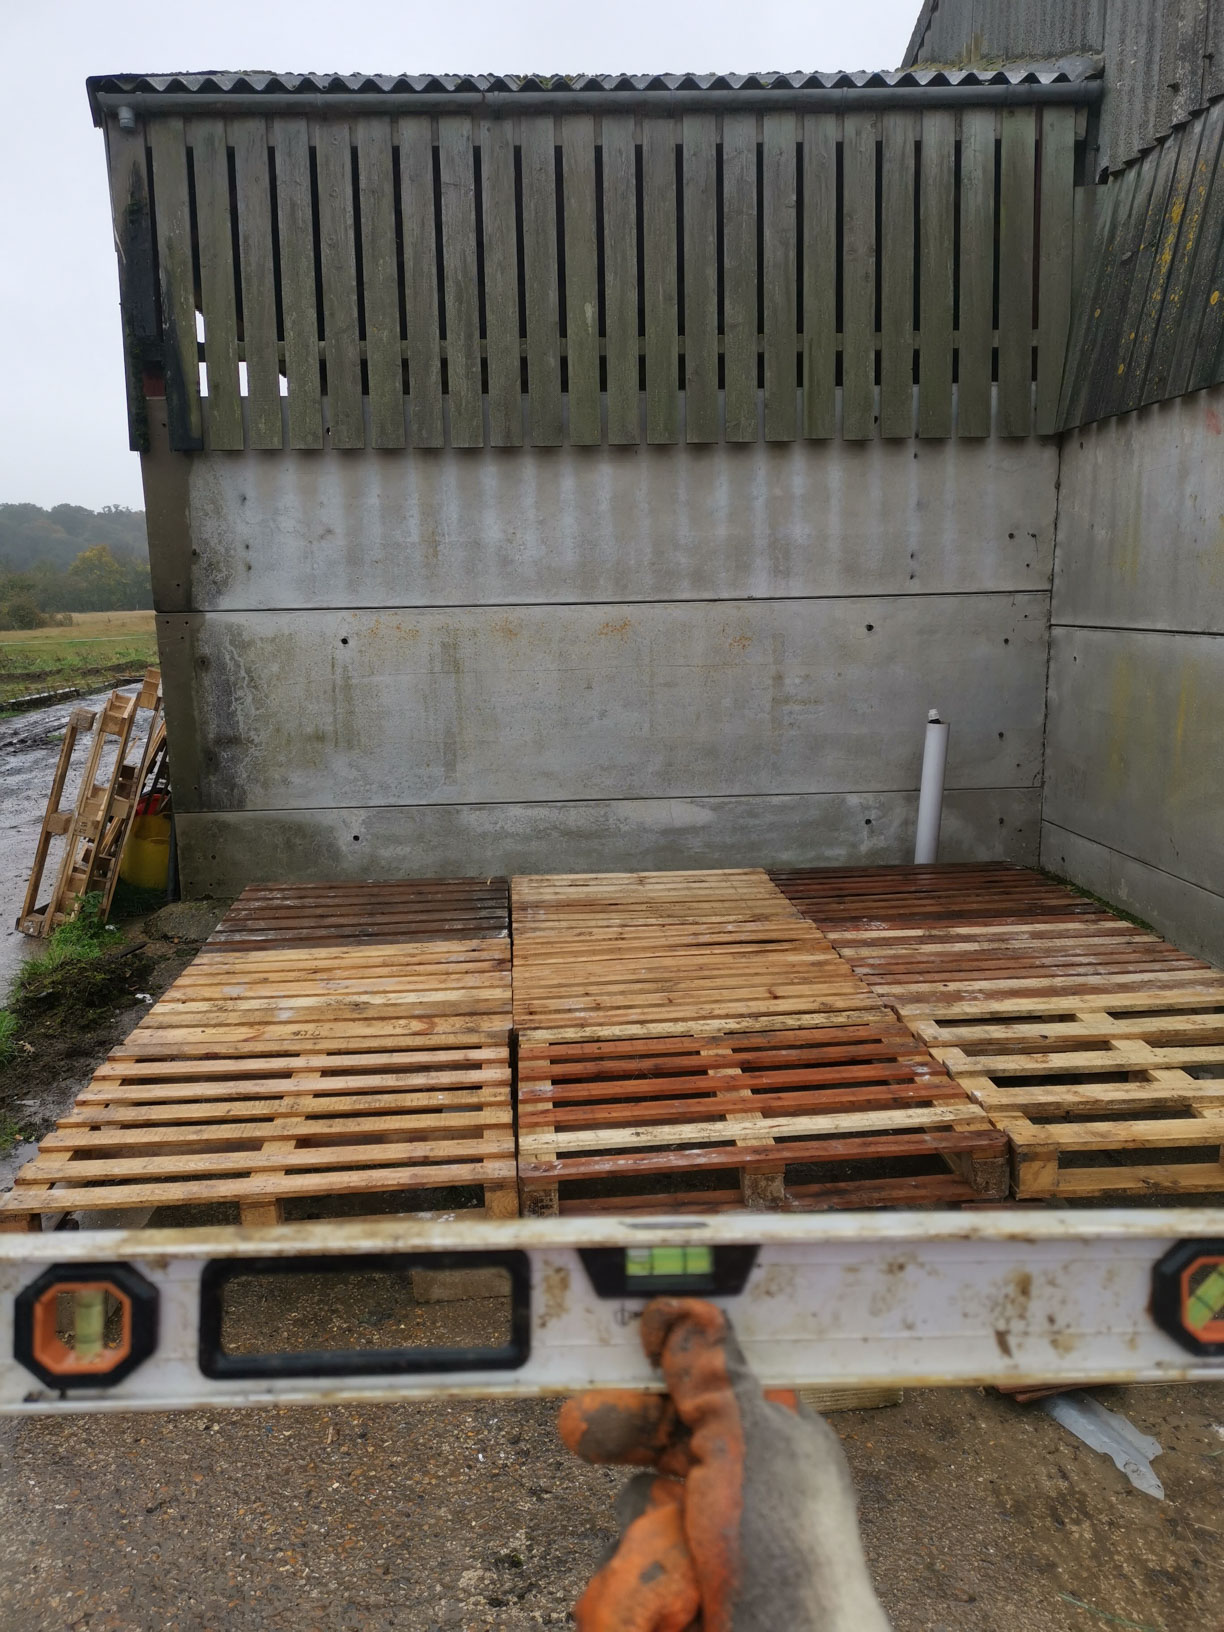 How To Build A Shed Out Of Pallets For Free Thatbloodybike Com